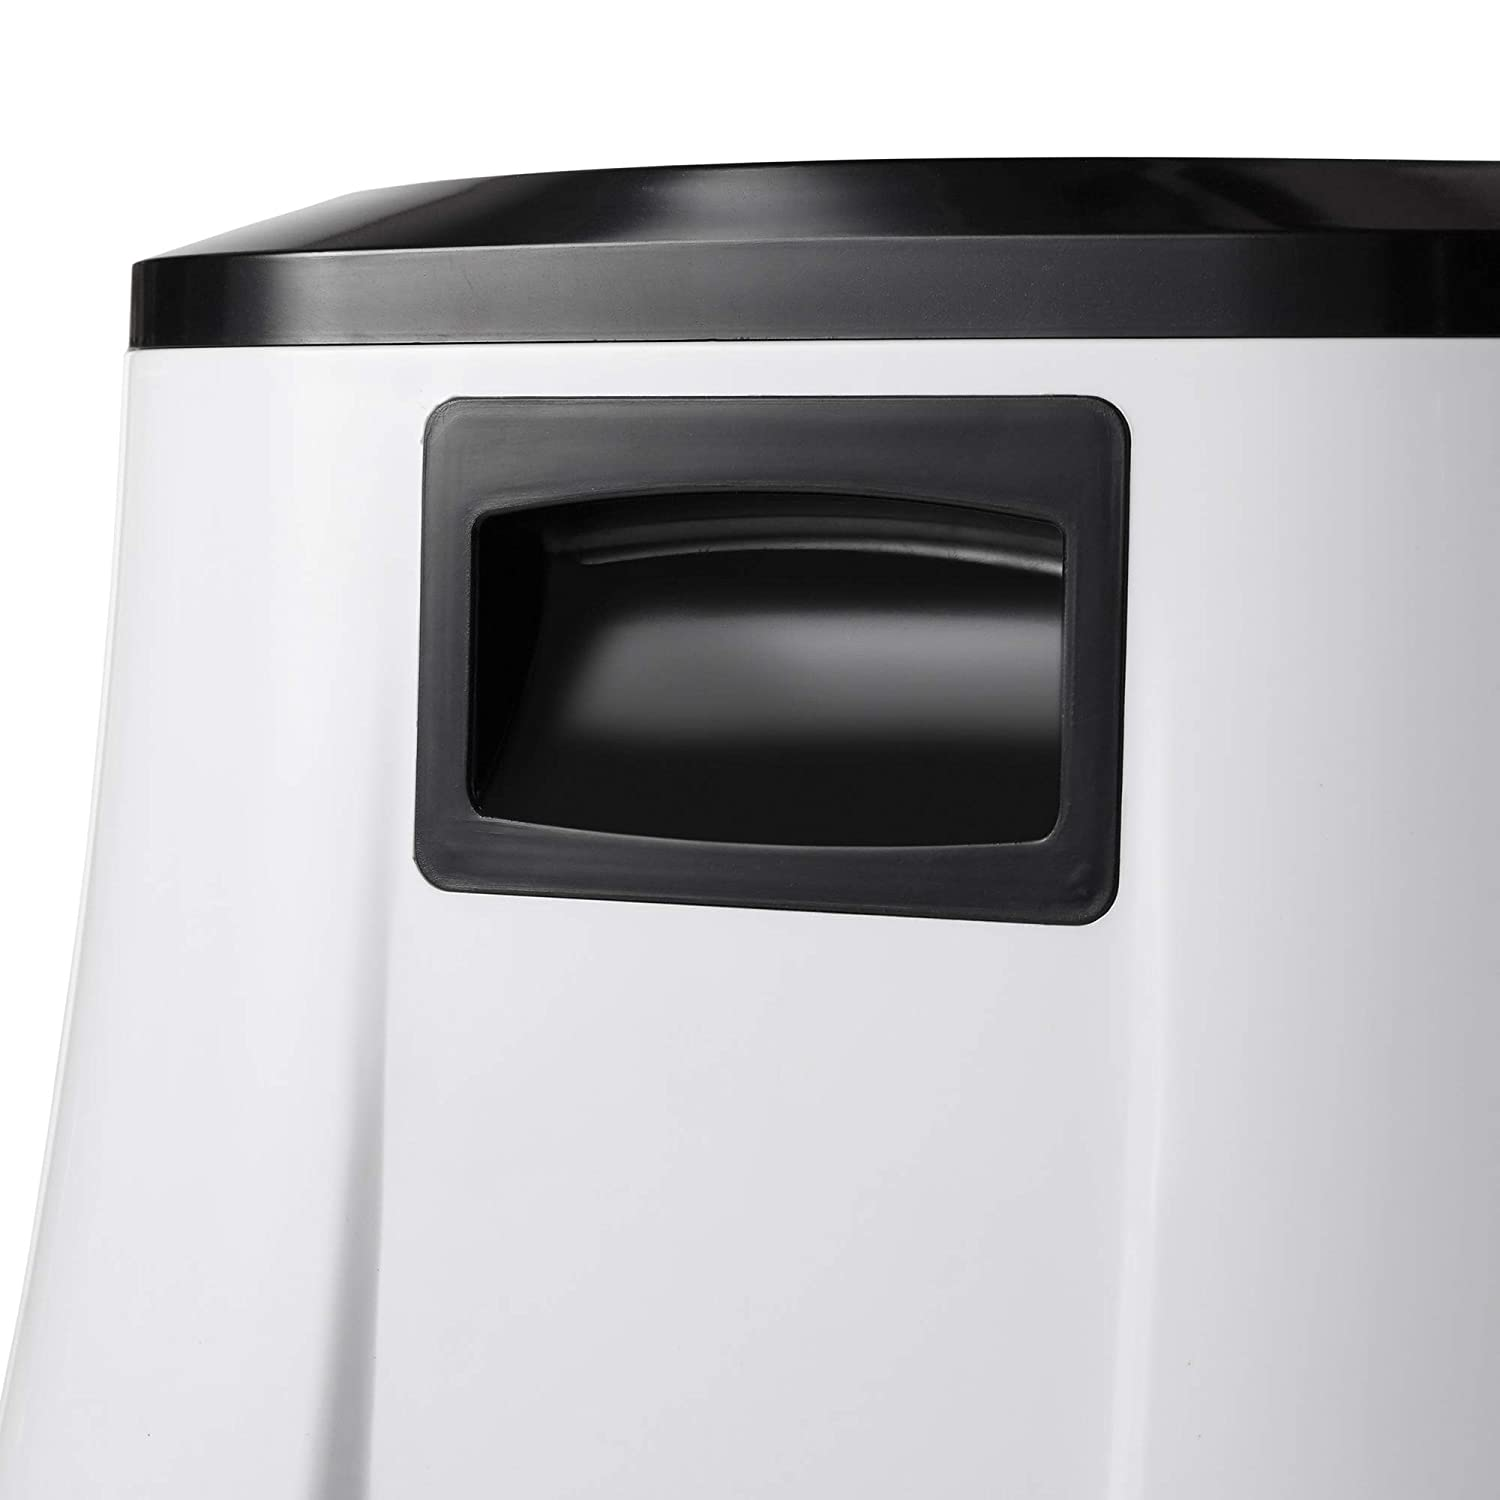 Saloniture Paraffin Bath Spa - Portable Electric Wax Warmer Machine for Hands and Feet : Beauty